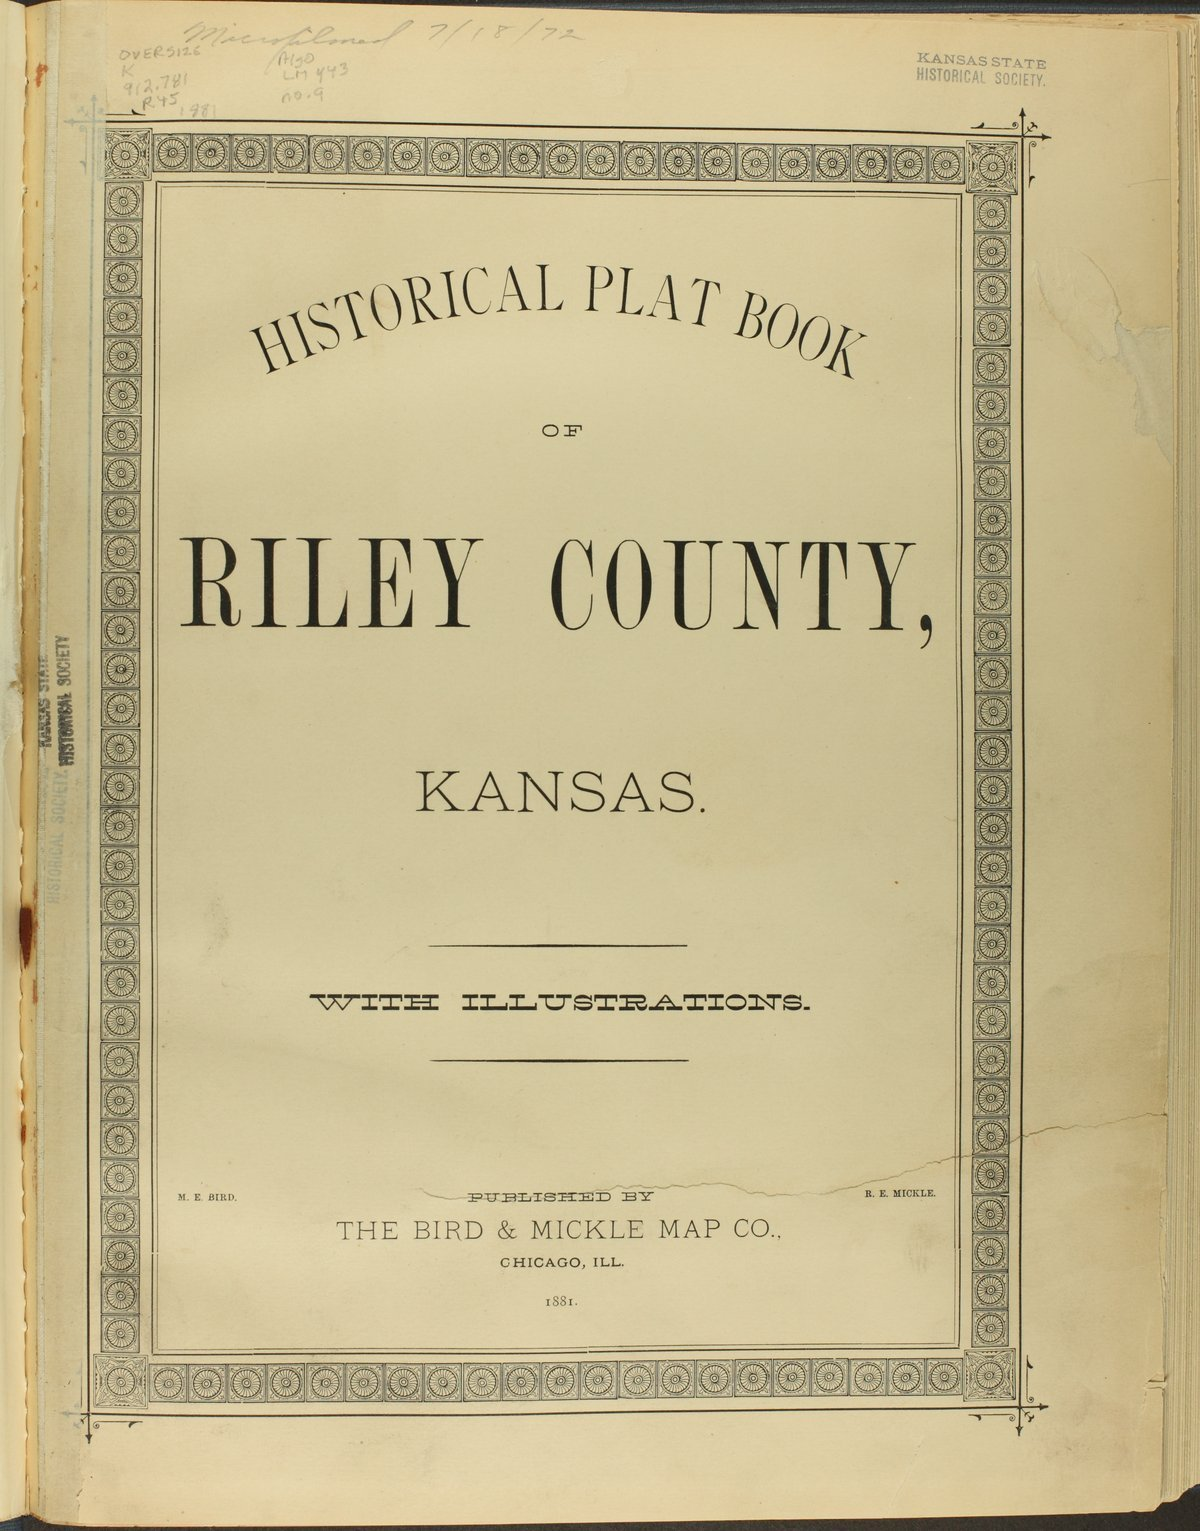 Historical plat book of Riley County, Kansas - Title Page